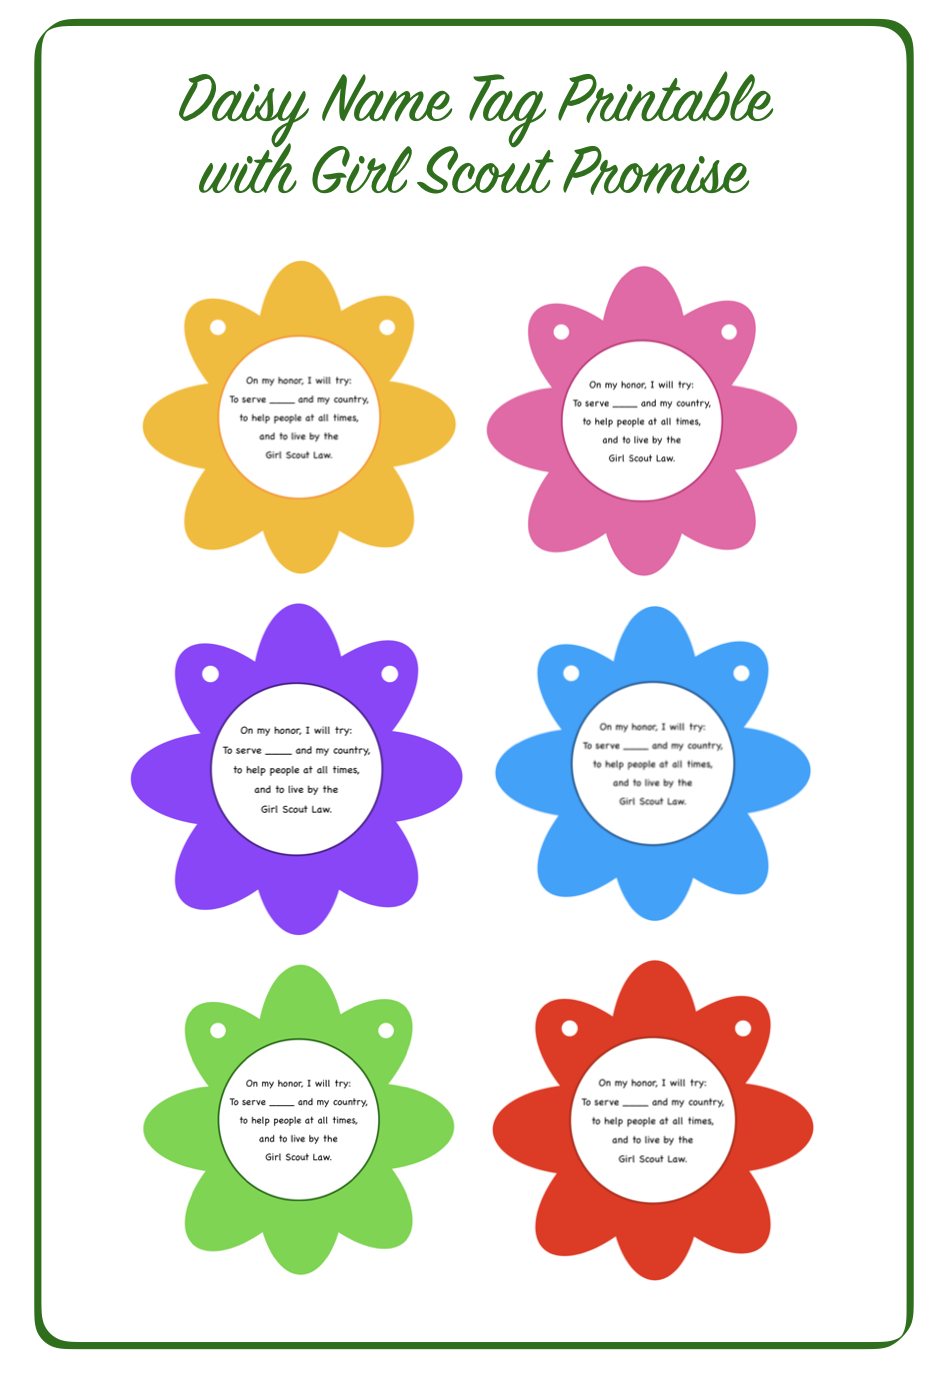 Free Daisy Name Tag Printable With Girl Scout Promise Printed On The - Free Daisy Girl Scout Printables